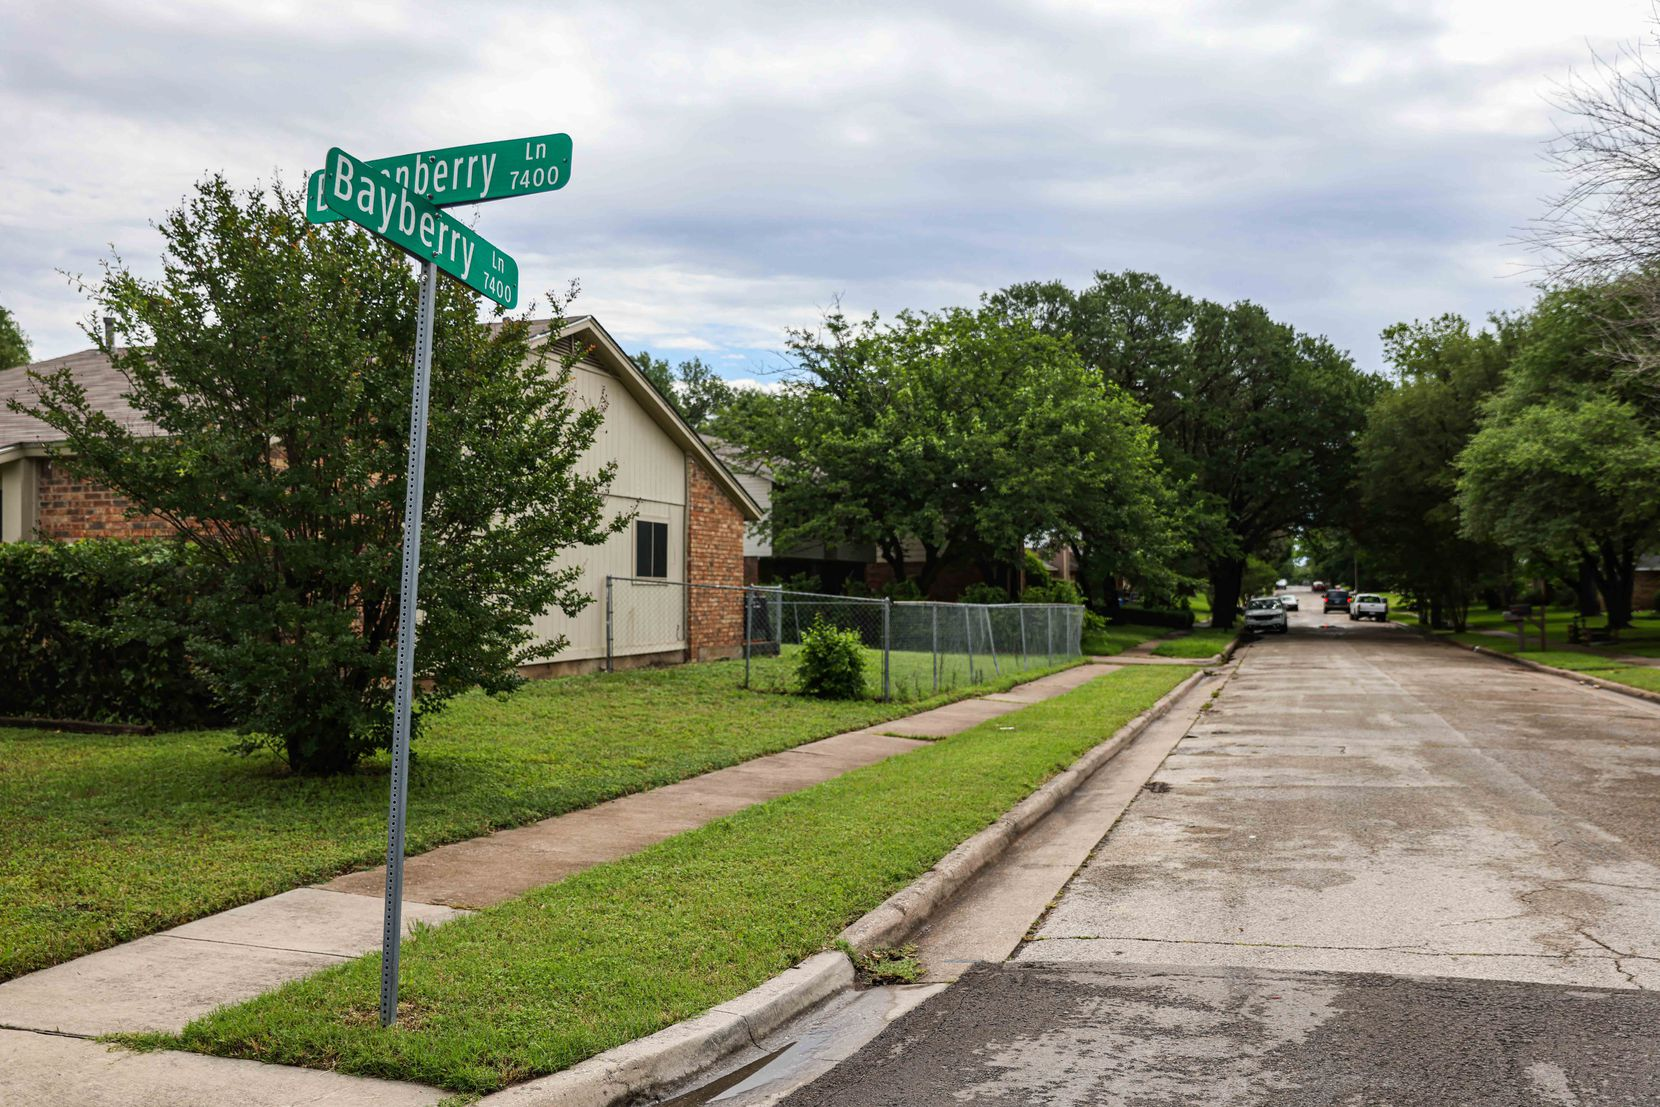 The suspect arrested in connection with the death of a 4-year-old Cash Gernon lives lives half a mile from where the boy's body was found Saturday morning in Dallas. Photo taken on Monday, May 17, 2021.